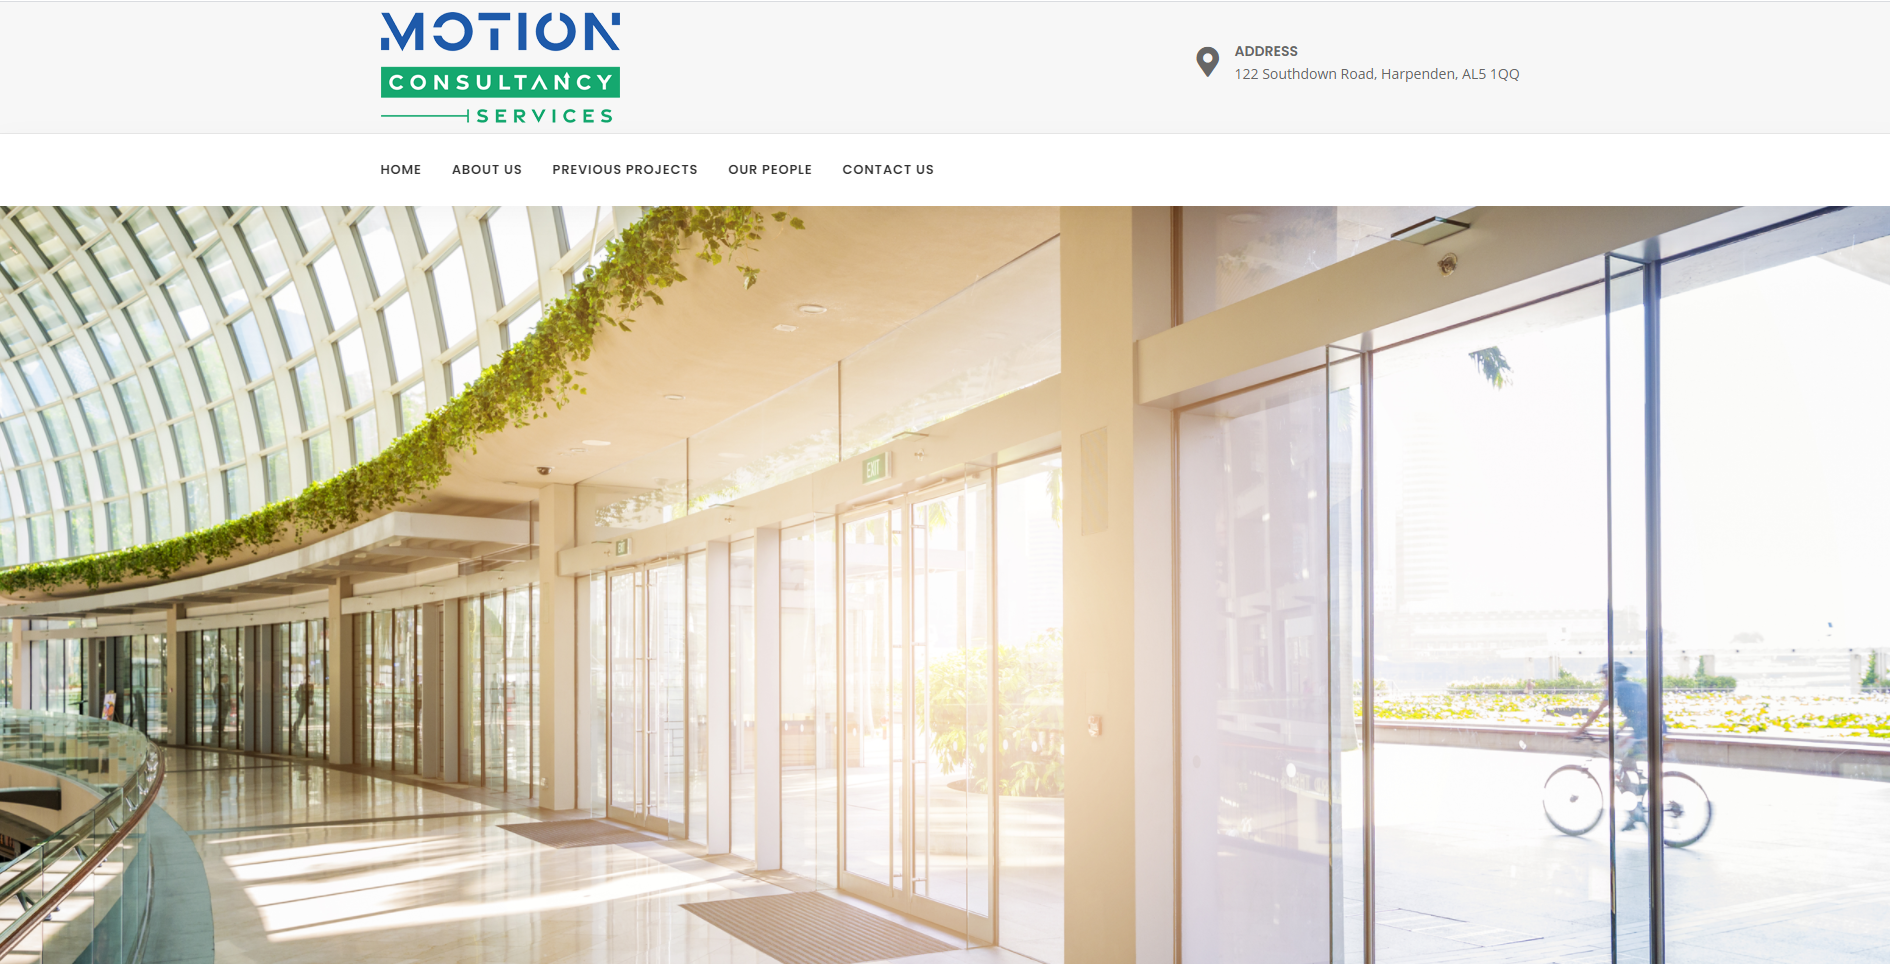 Motion Consultancy Services /